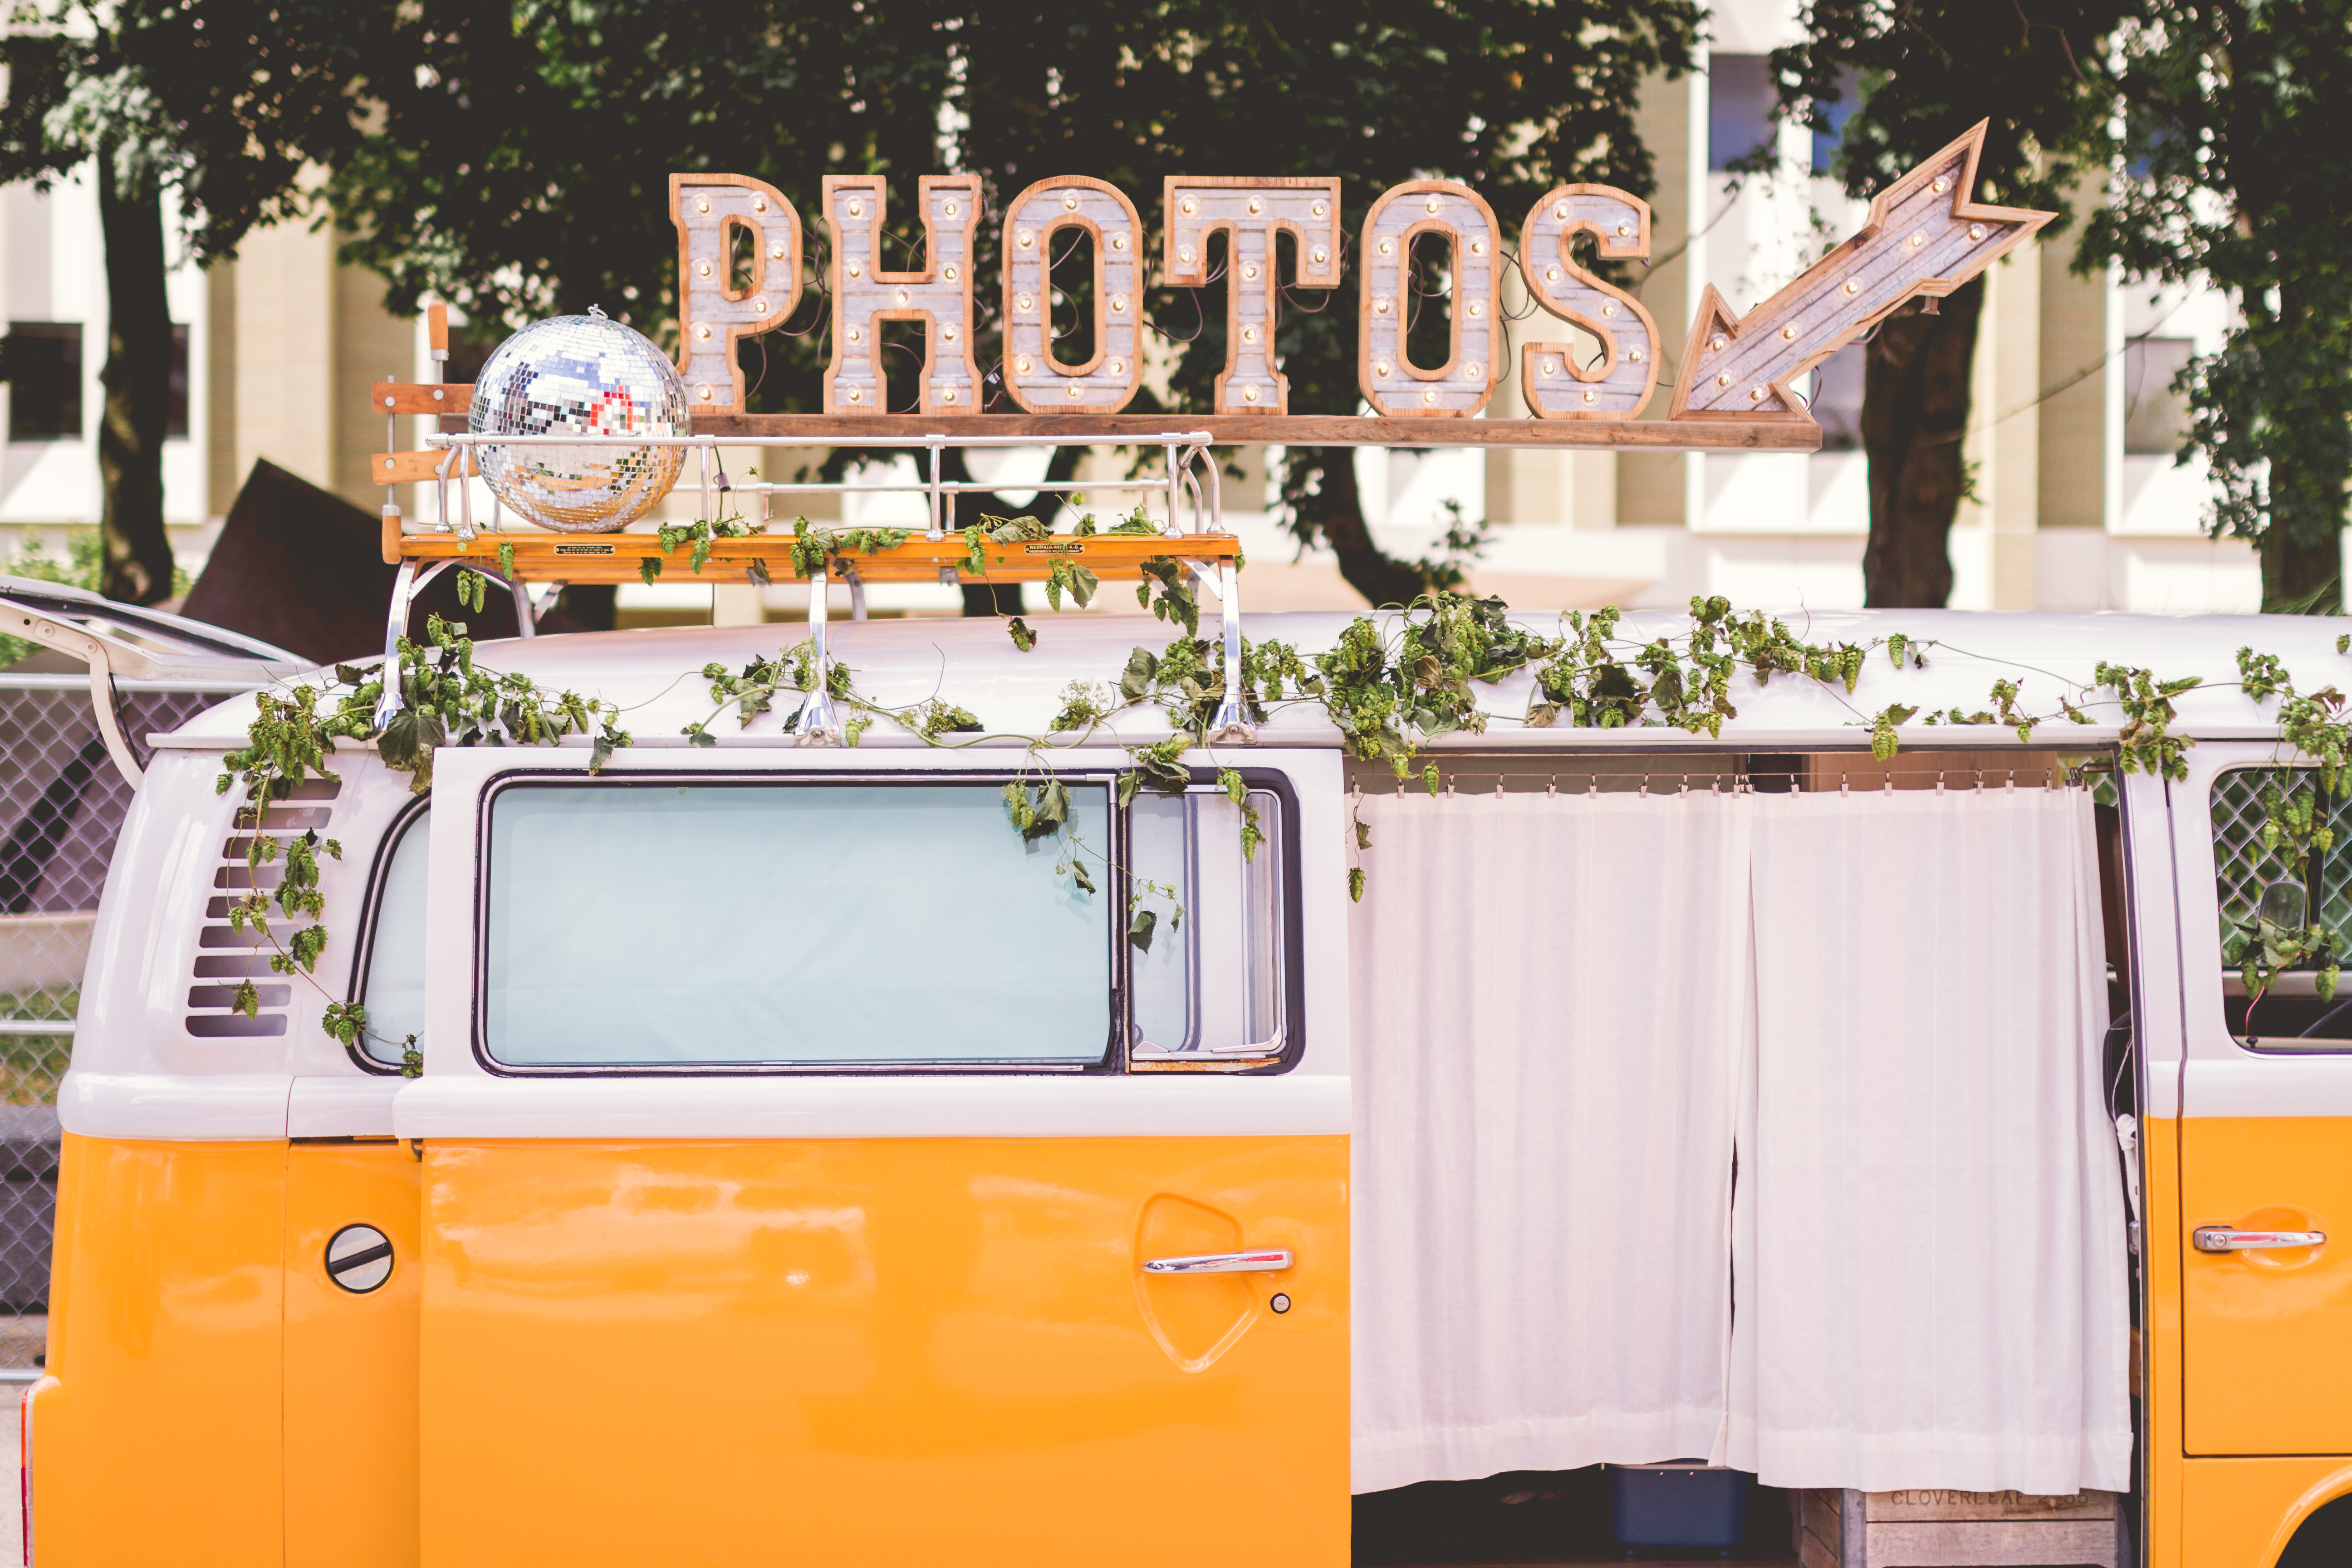 Photo Booth | West Michigan Photo Booth | Volkswagen Bus | VW Photo booth bus | Southwest Michigan Event | Photo booth bus | west Michigan event | vintage | bohemian wedding | hippie style | 77 Kombi | air cooled | Michigan photographer | michigan events | barefoot wedding | outdoor wedding ideas | corporate event planner | michigan venue | west michigan event | grand rapids event | lakeshore wedding | class reunion | beer fest | hopstock | grand rapids, MI | MI brewery | music and beer | calder plaza | downtown GR